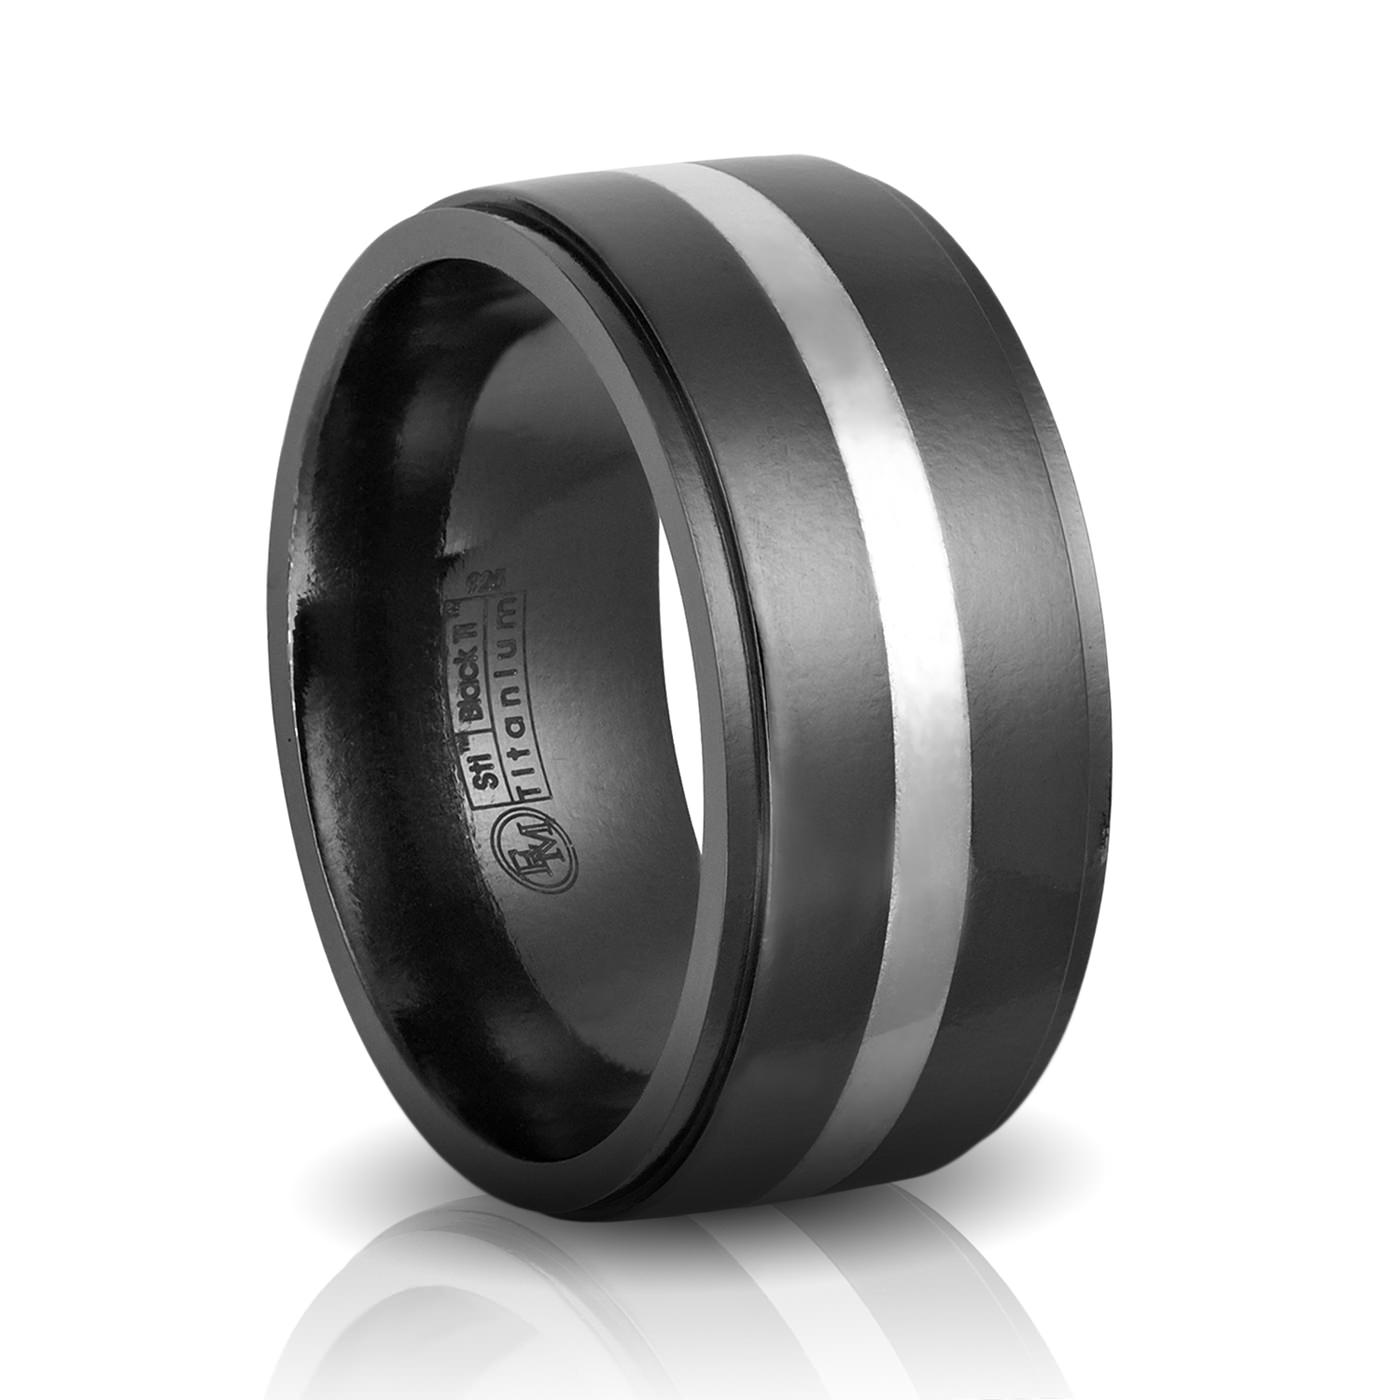 c silver mens titanium bands edward mirell band rings sterling black by